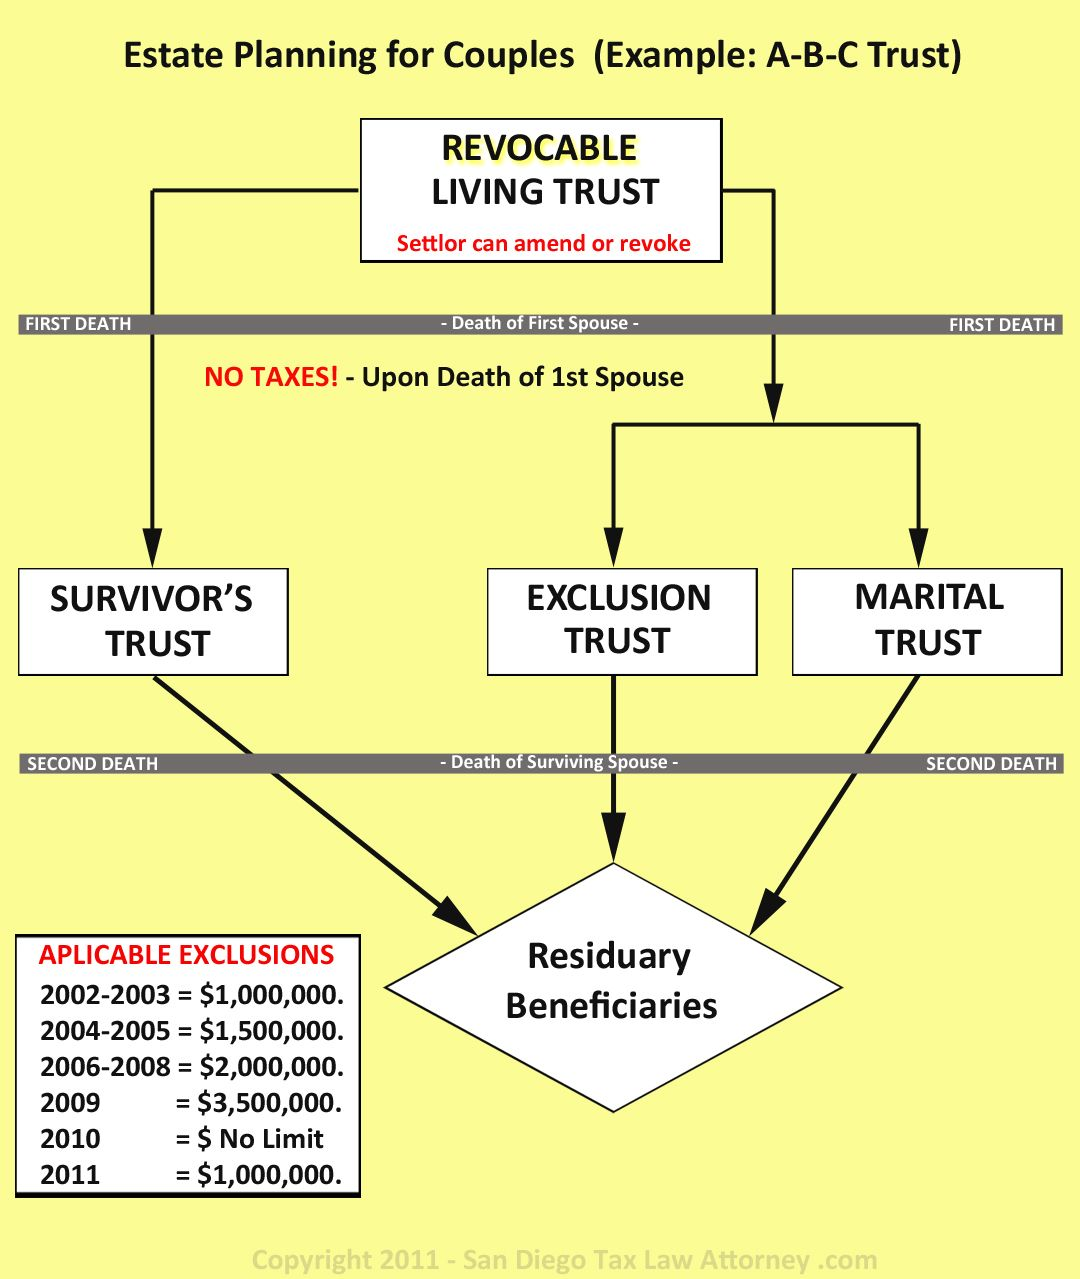 Estate planning an    trust flow chart federal tax also legacy assurance plan pointing about the and how rh pinterest